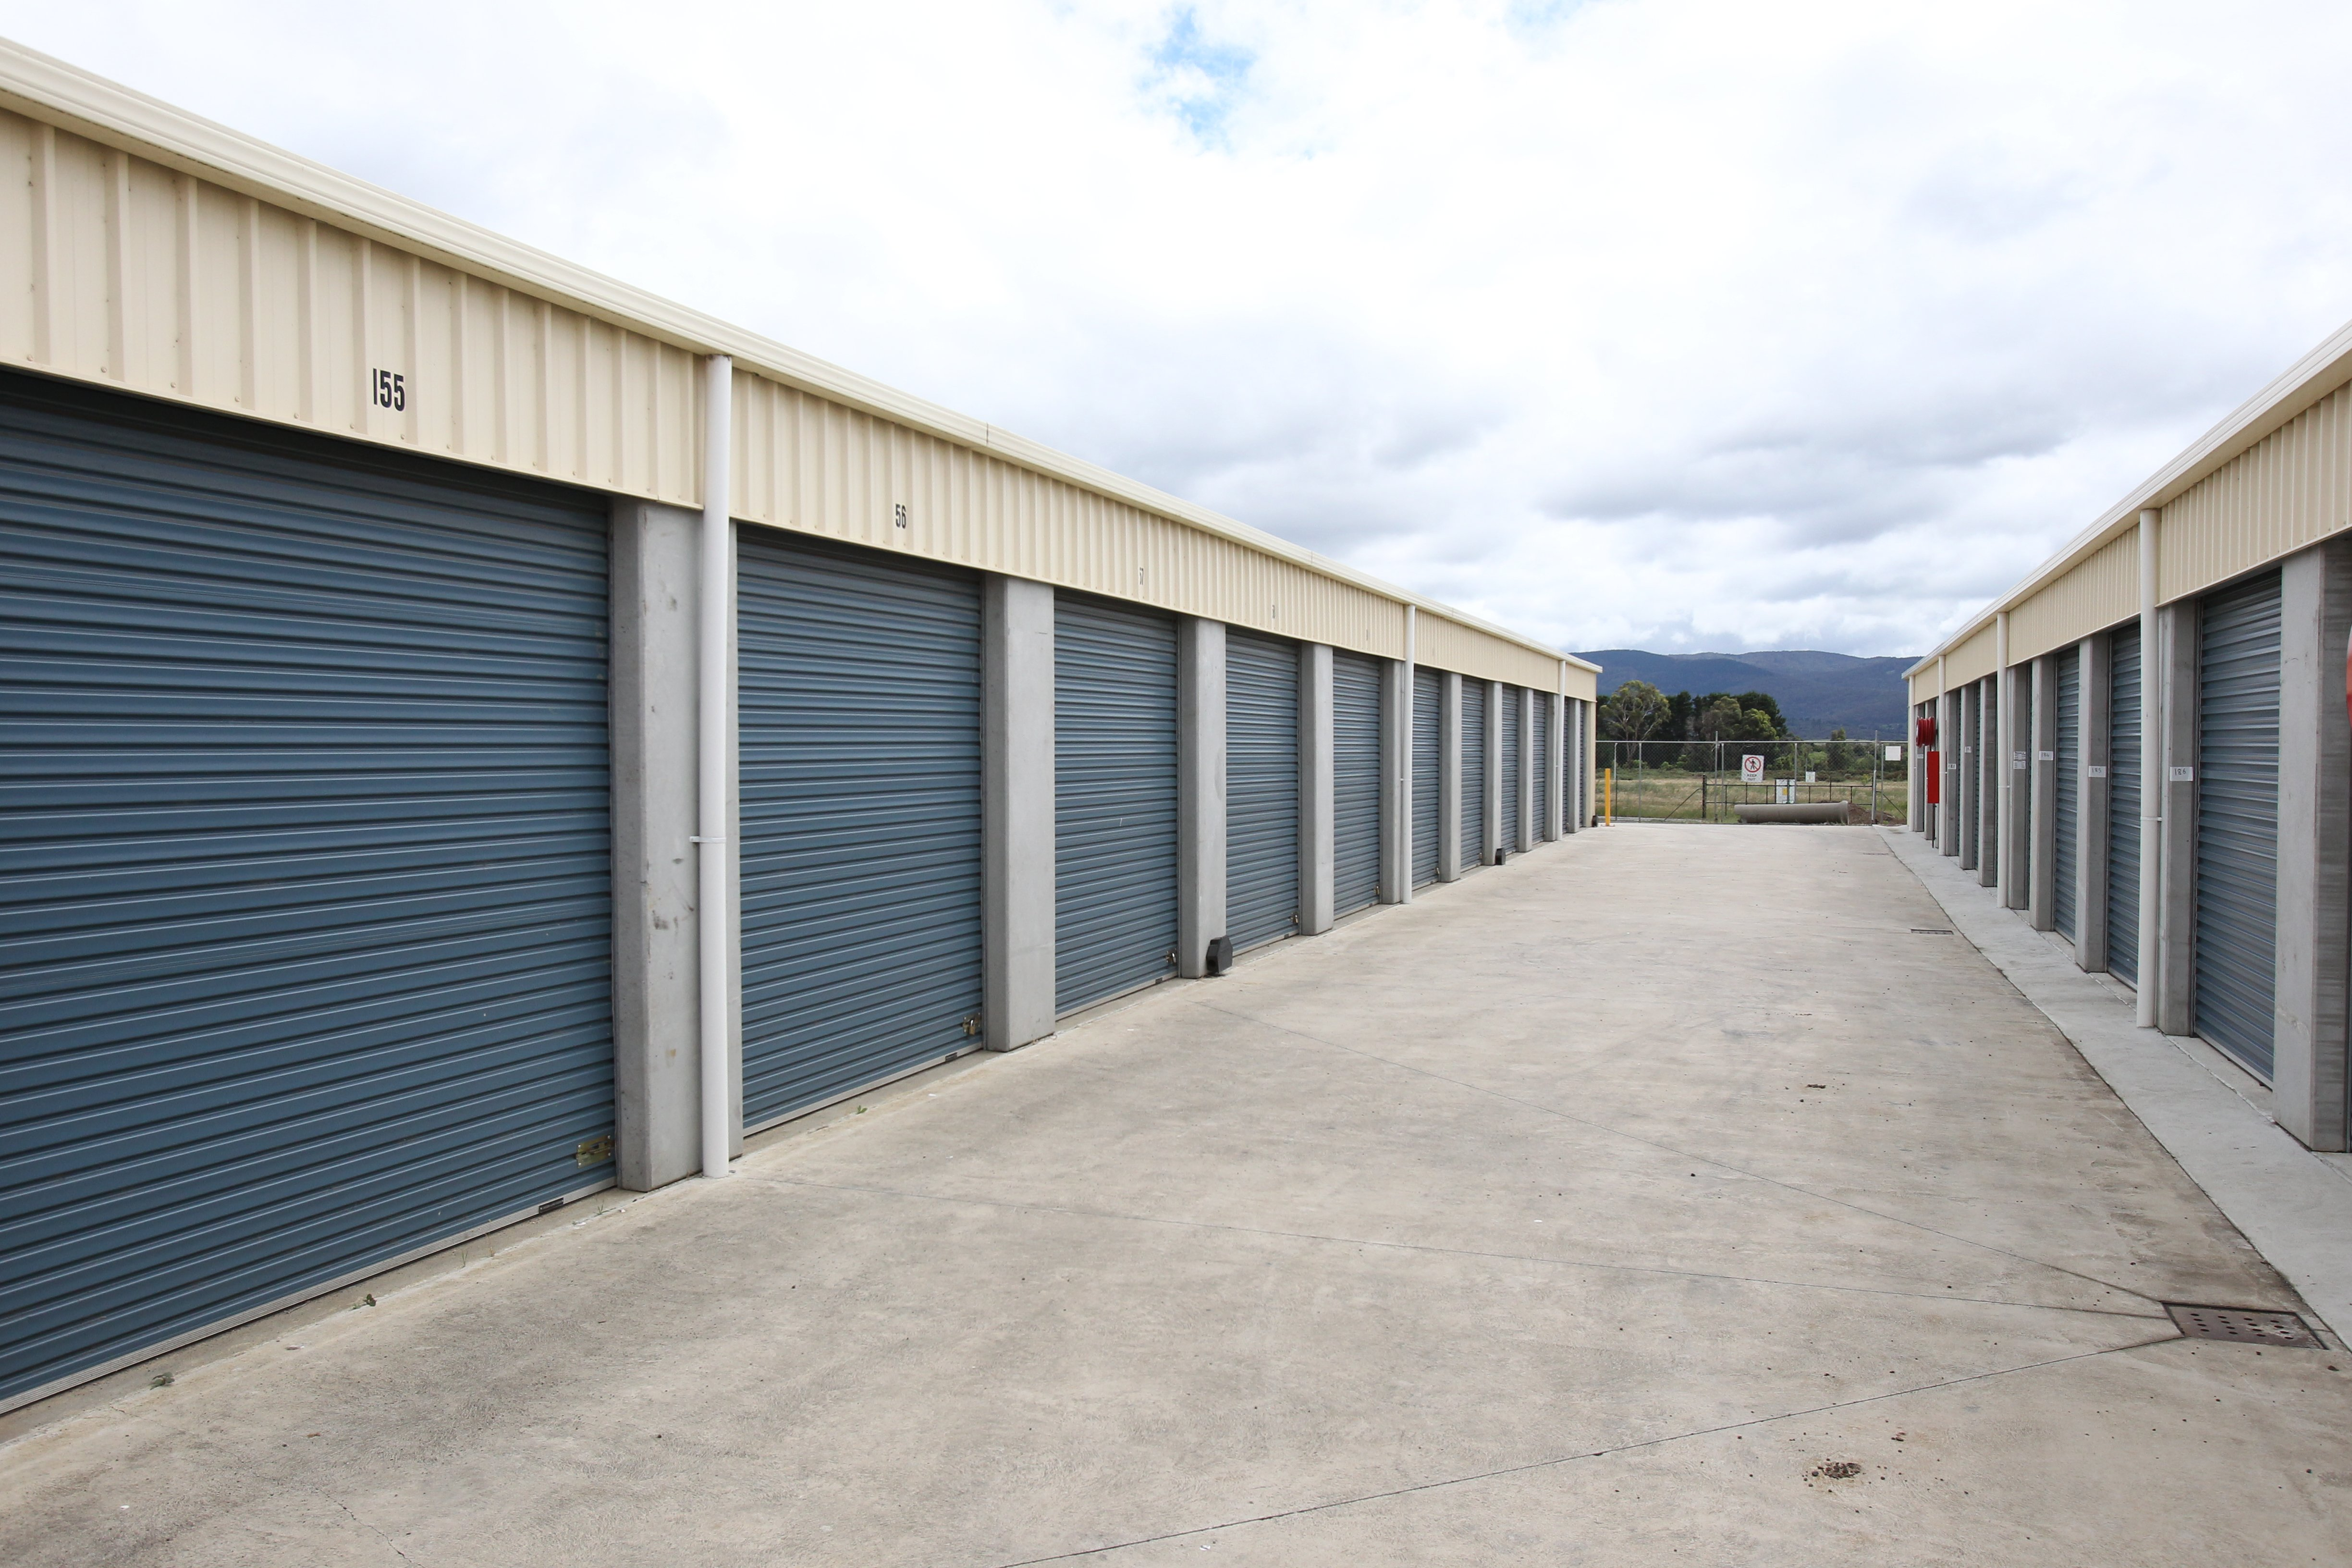 Storage Units Hobart Boom In Self Storage Units As More Australians Take To Apartment